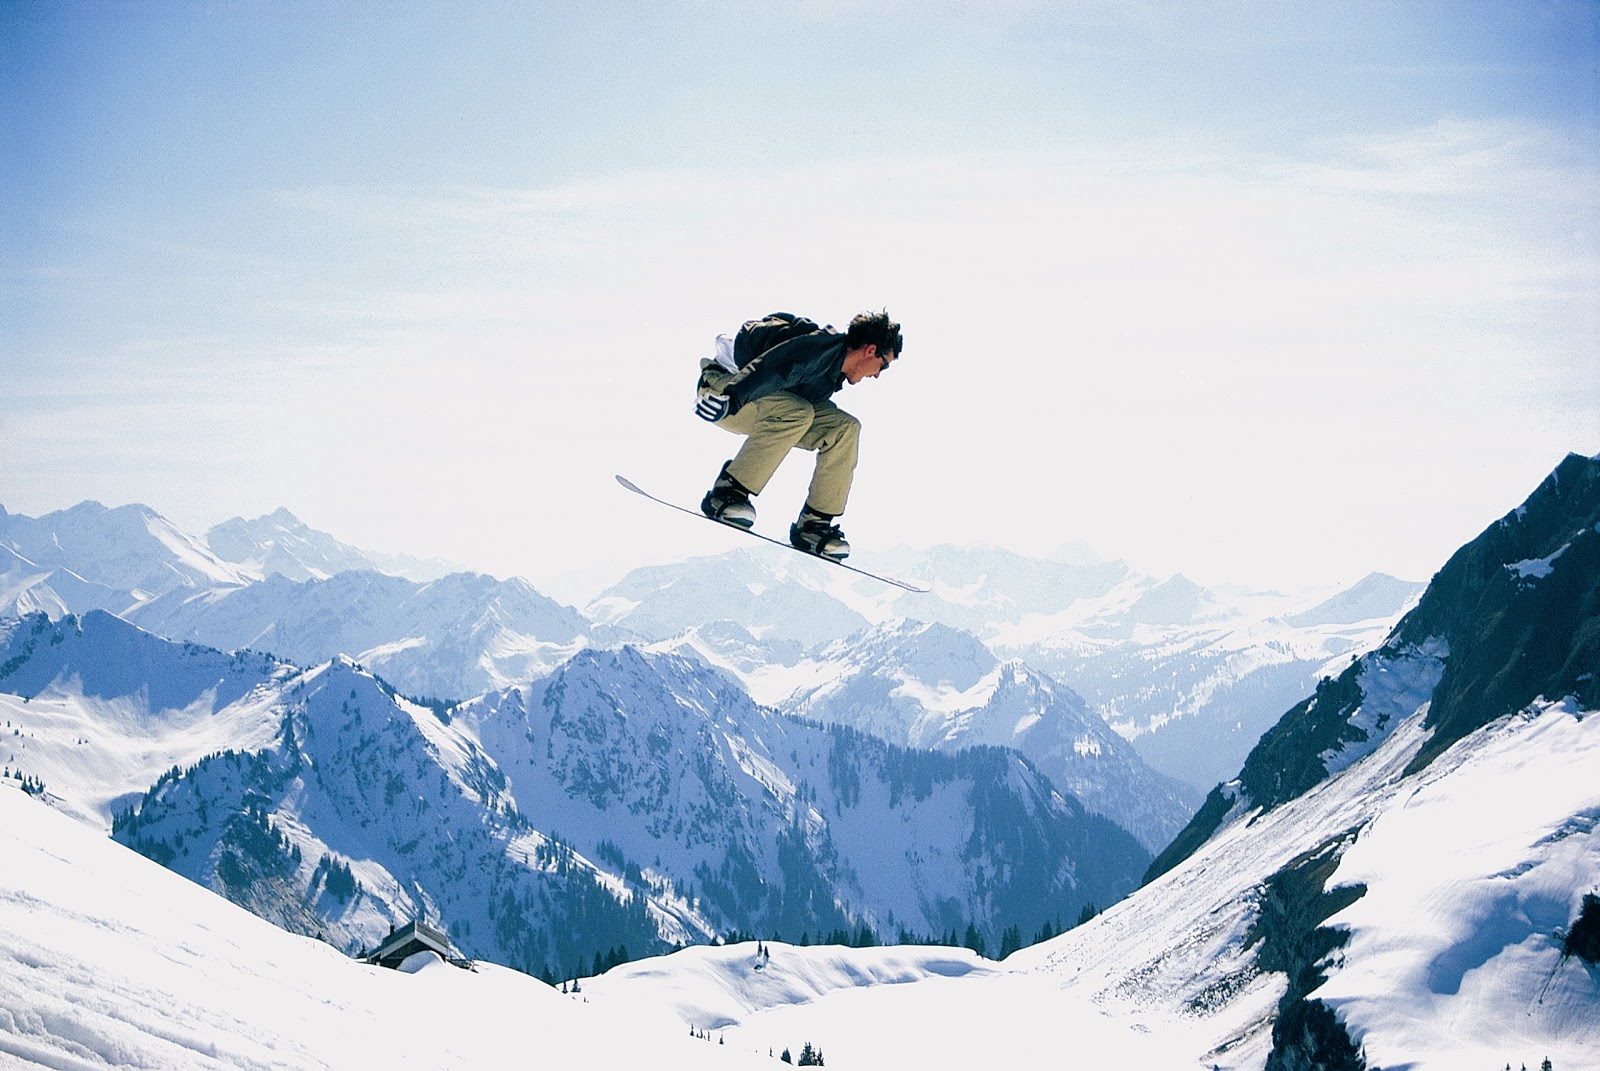 snowboard outdoor wallpaper desktop - photo #8